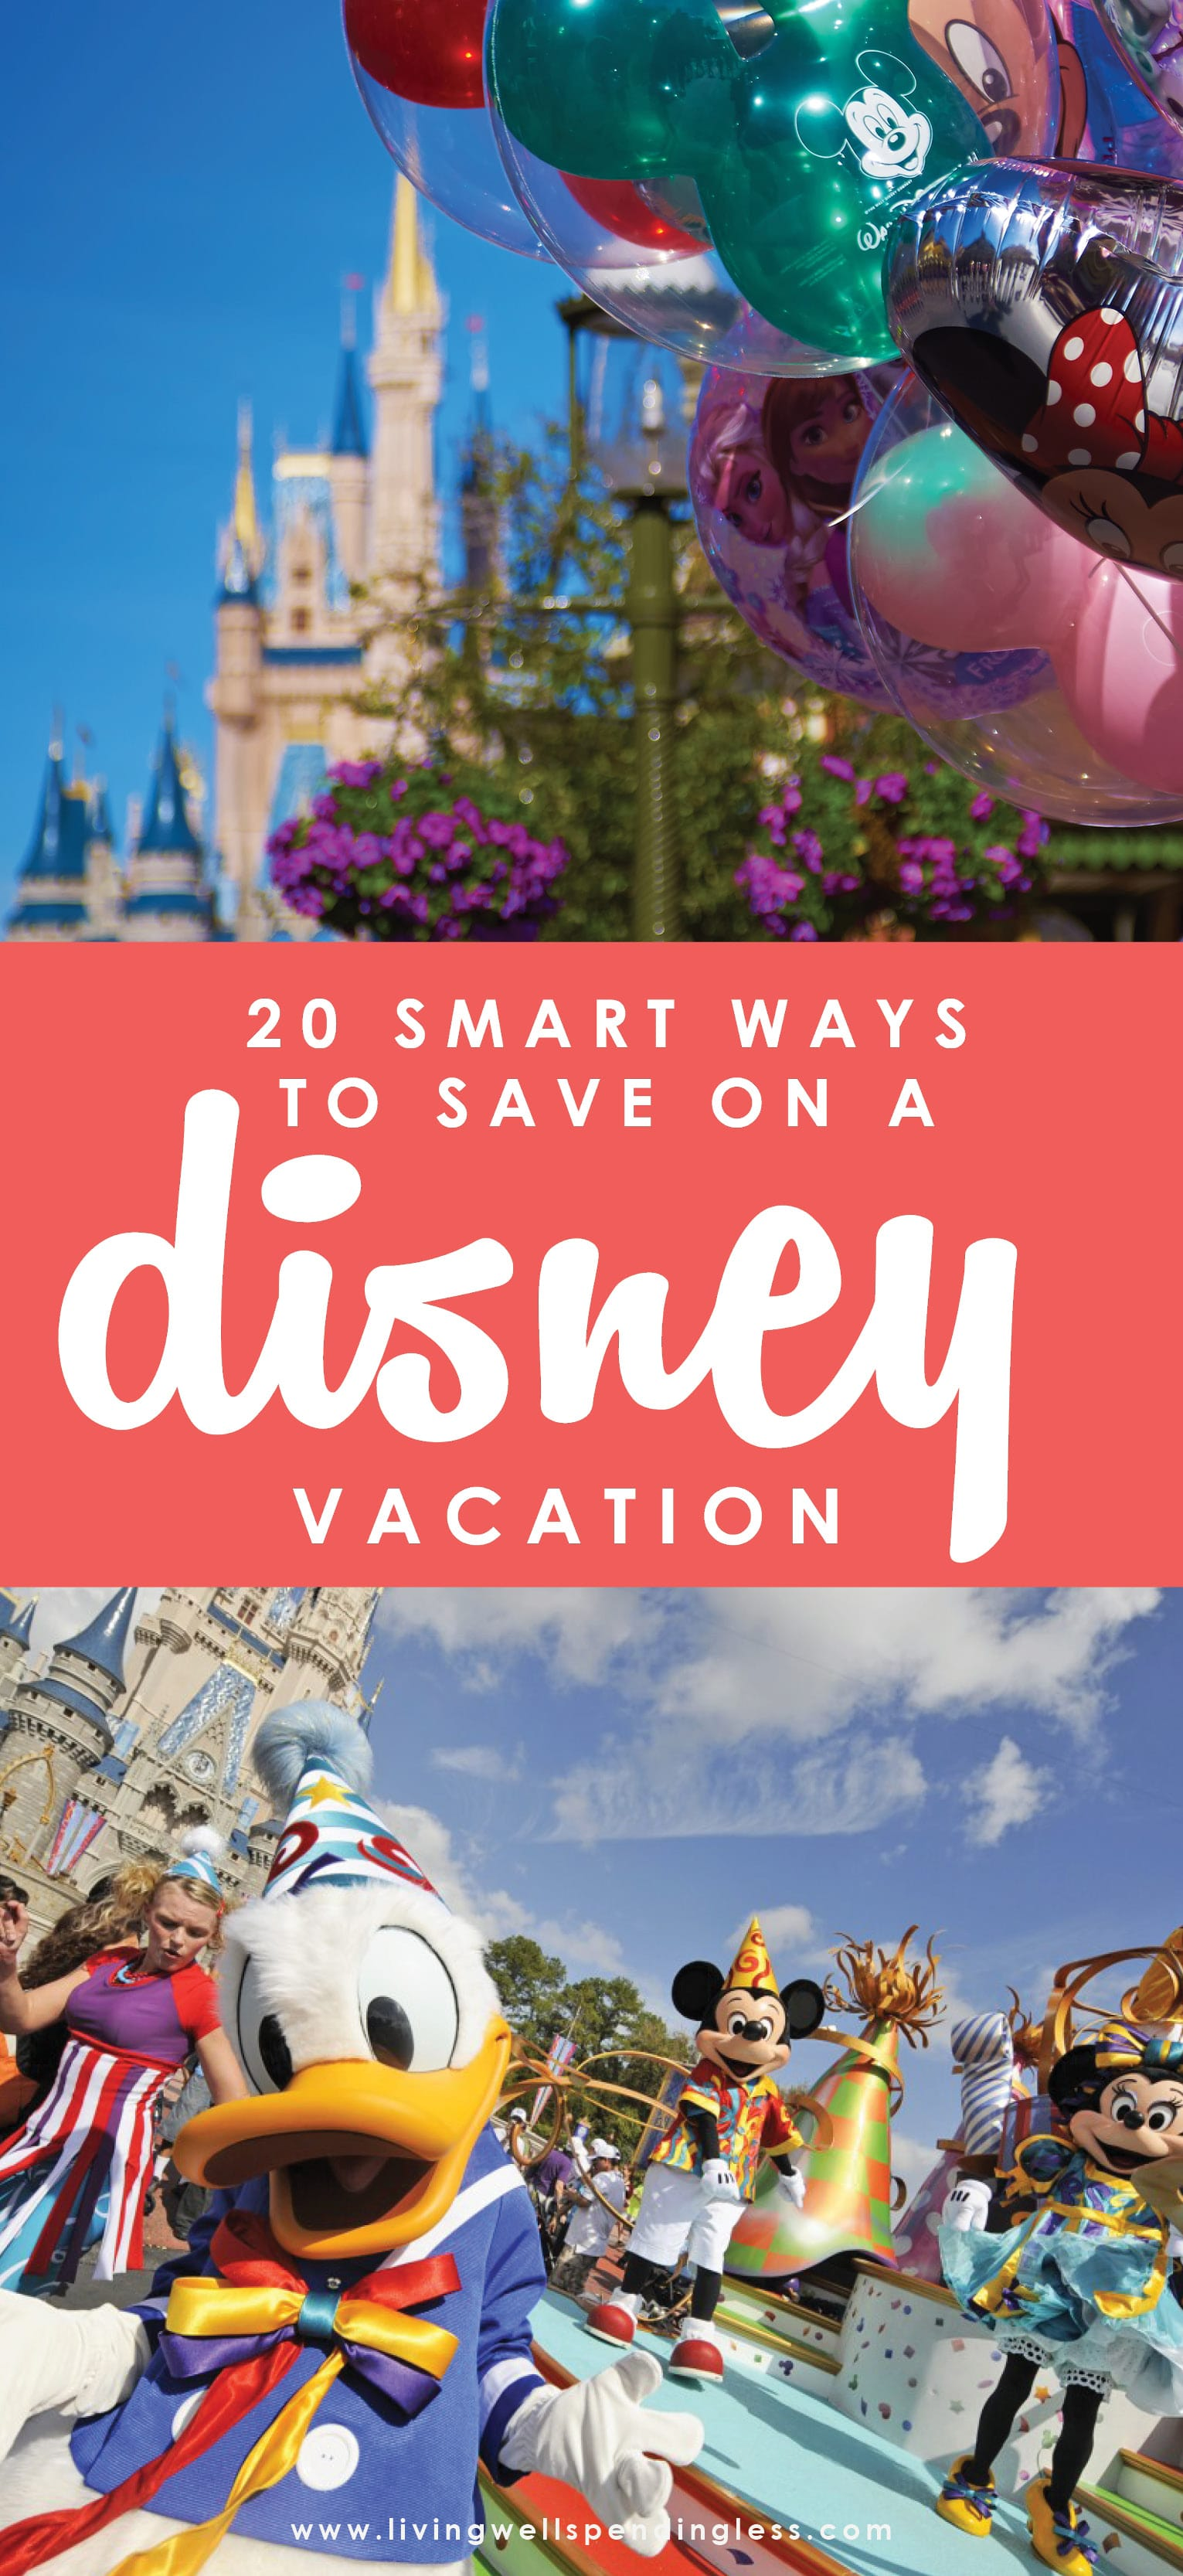 20 Smart Ways to Save on a Disney Vacation  Save at Disney